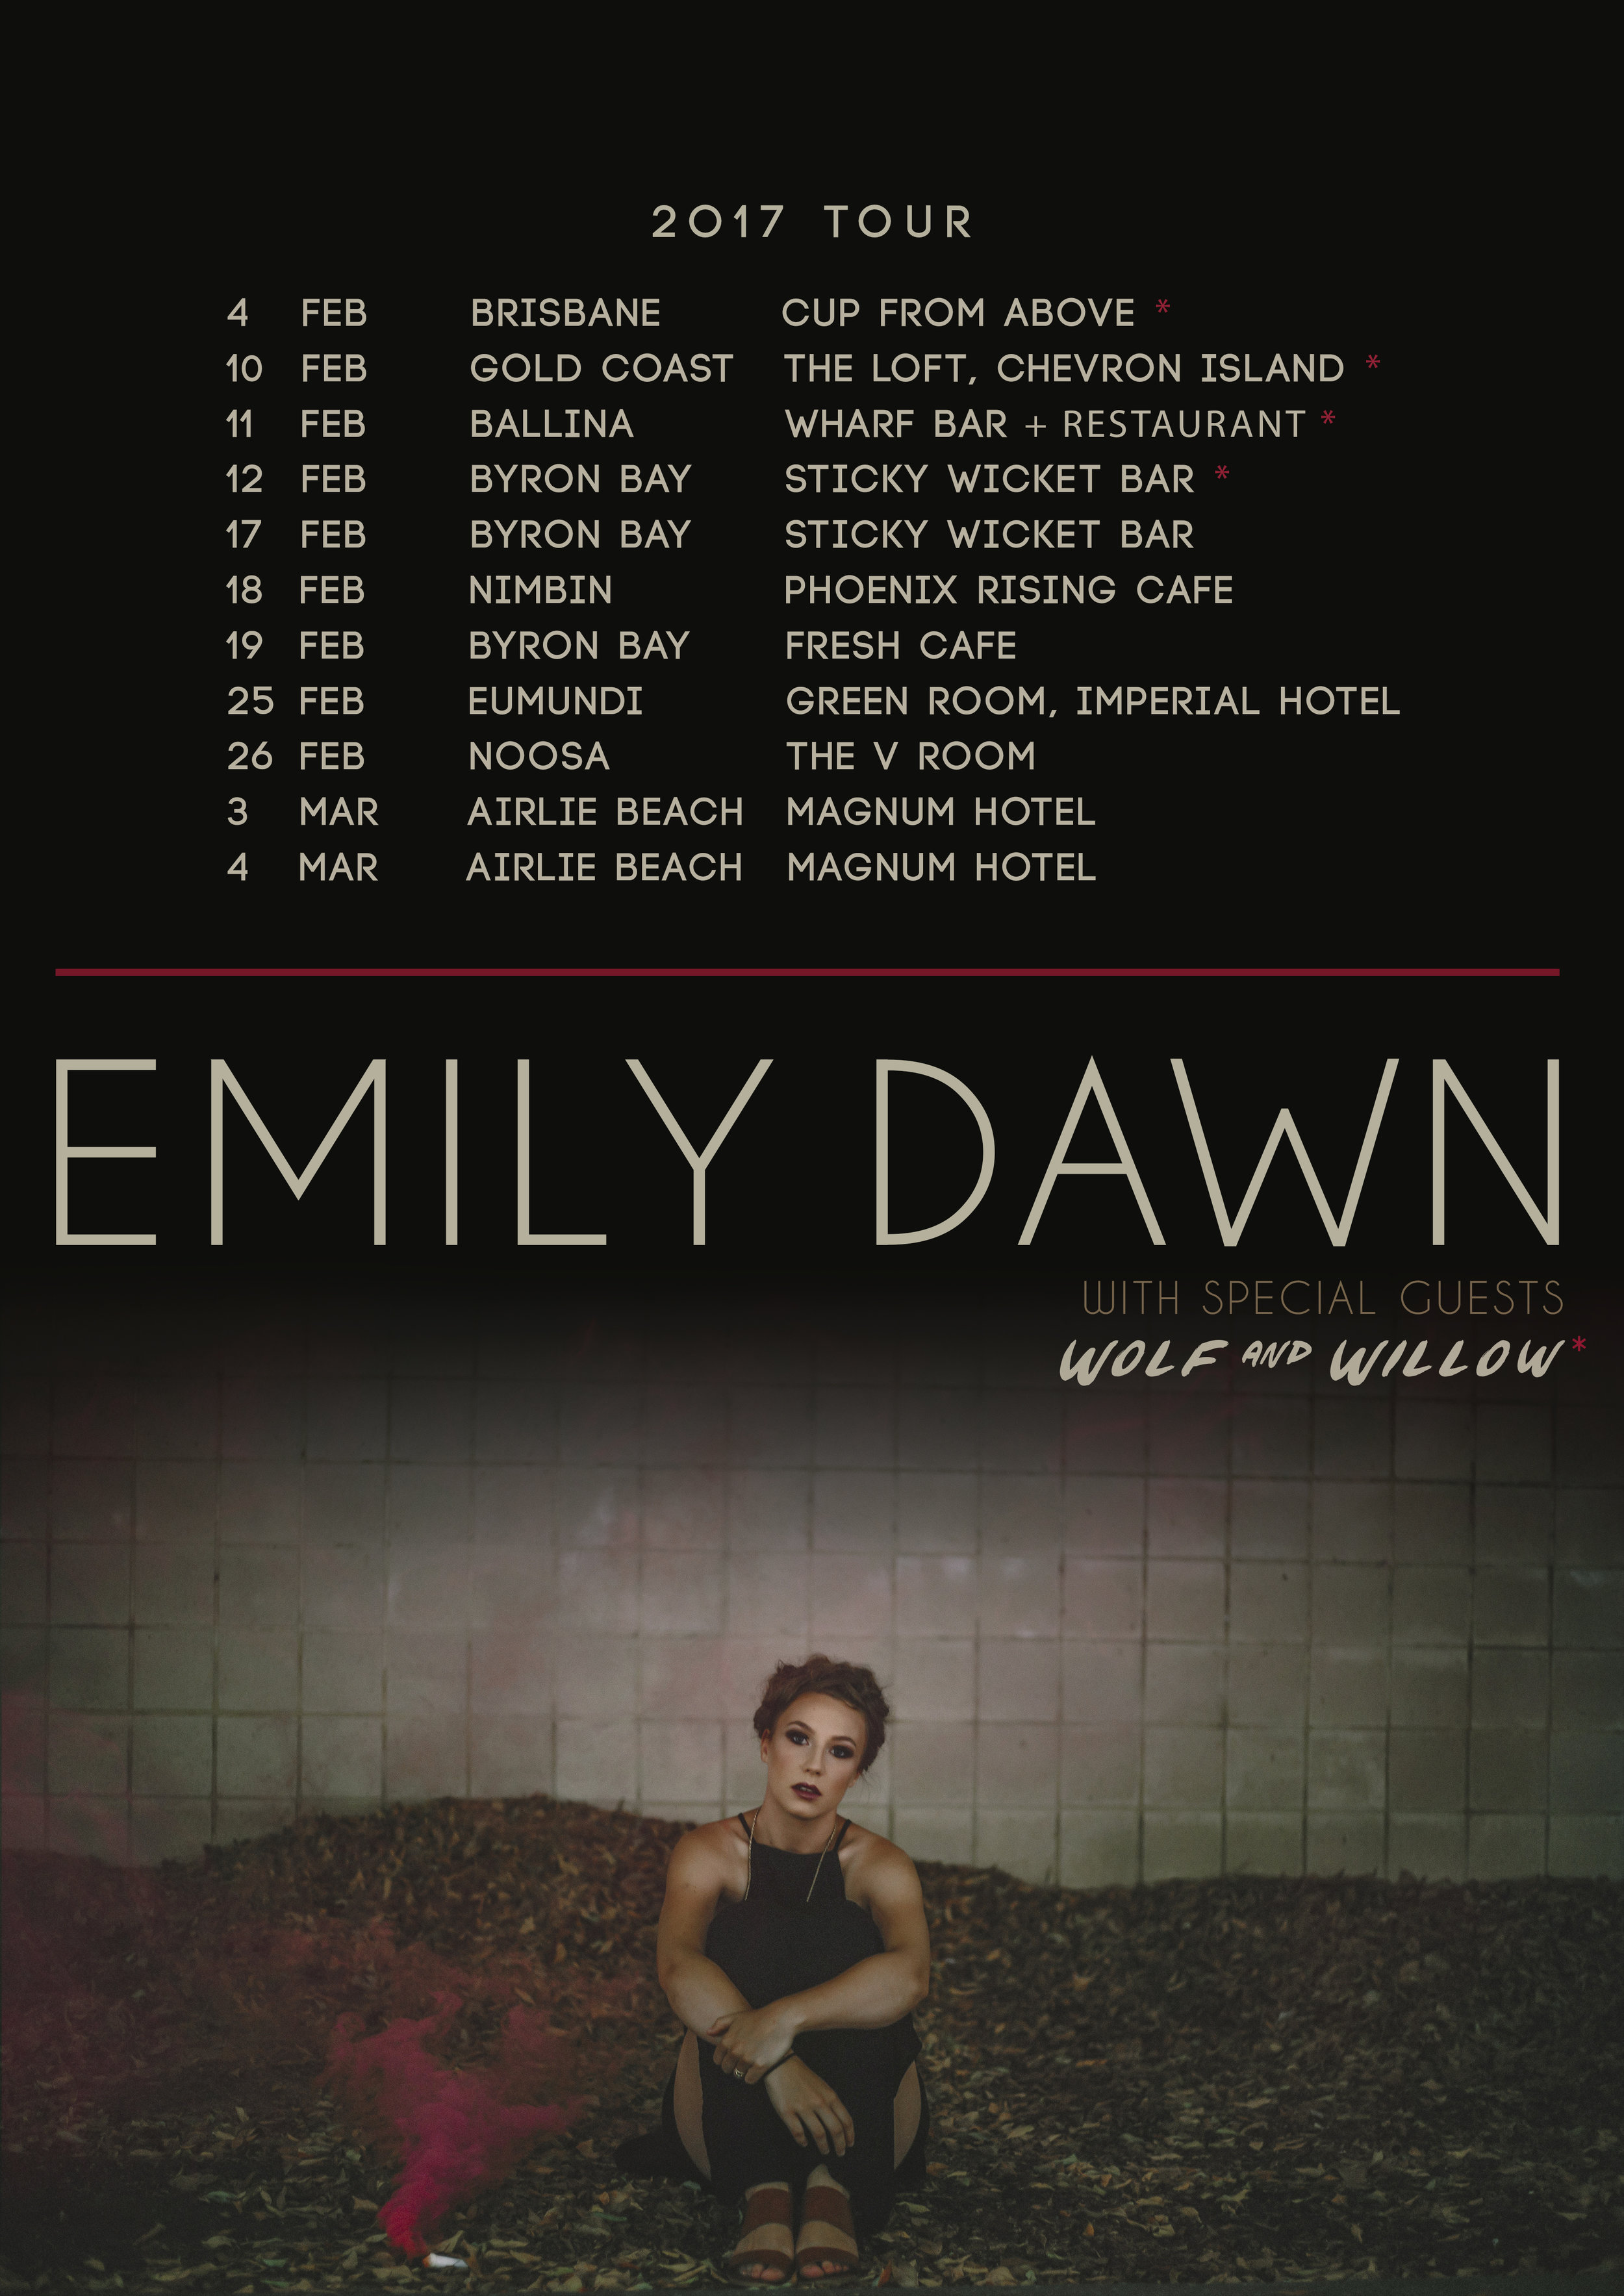 2017 Tour Poster for Emily Dawn Music